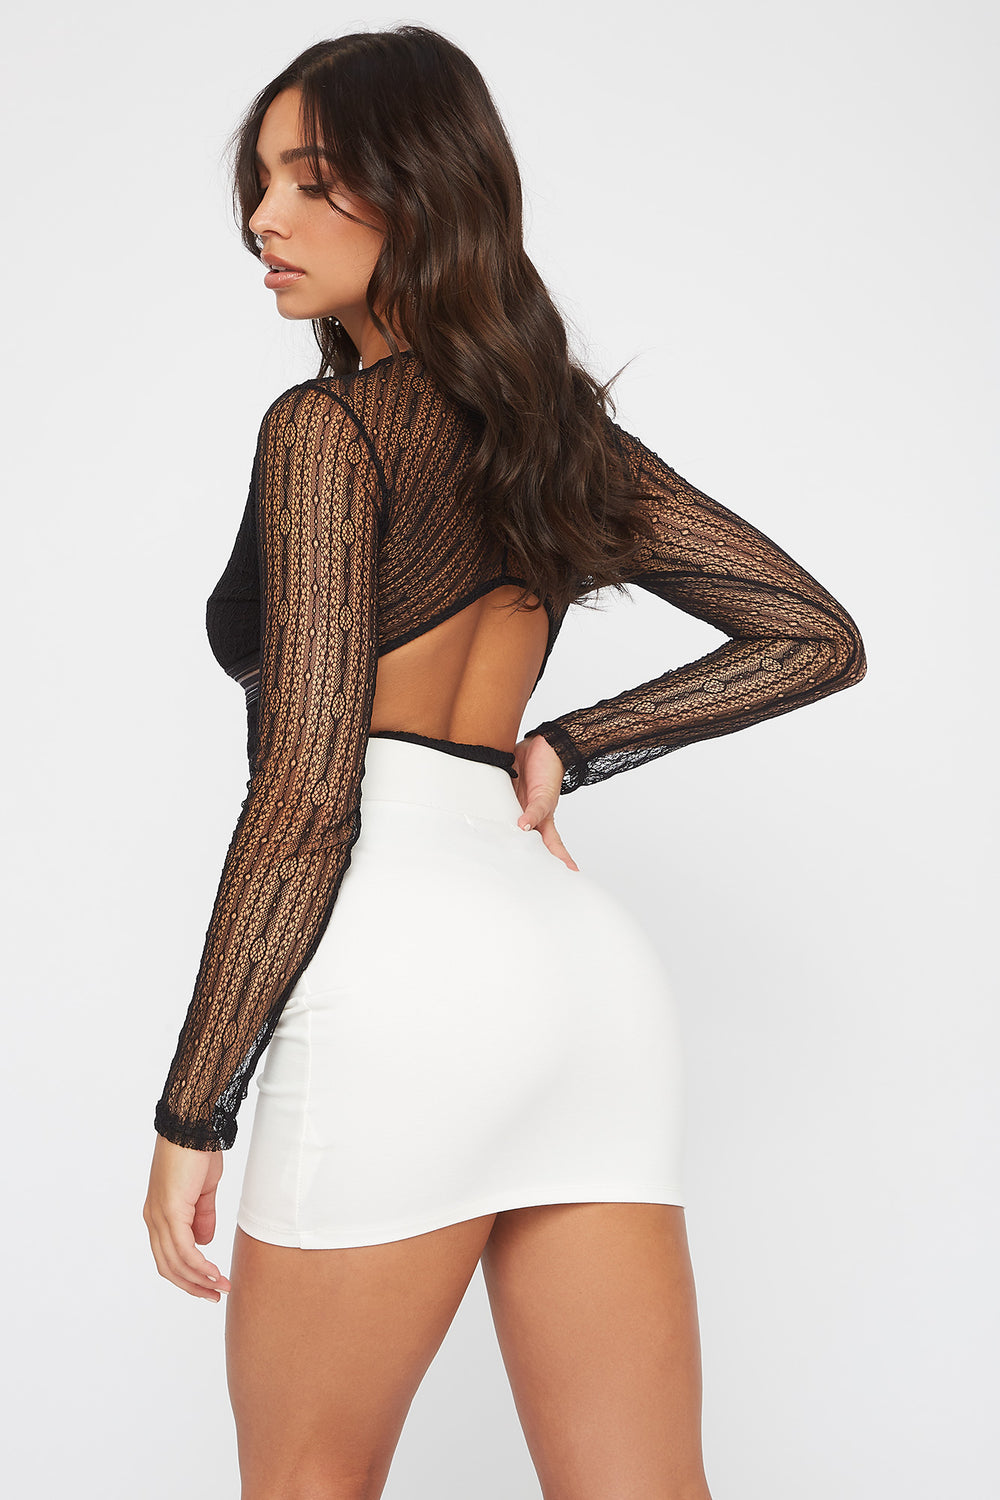 Cut Out Back V-Neck Lace Long Sleeve Bodysuit Black